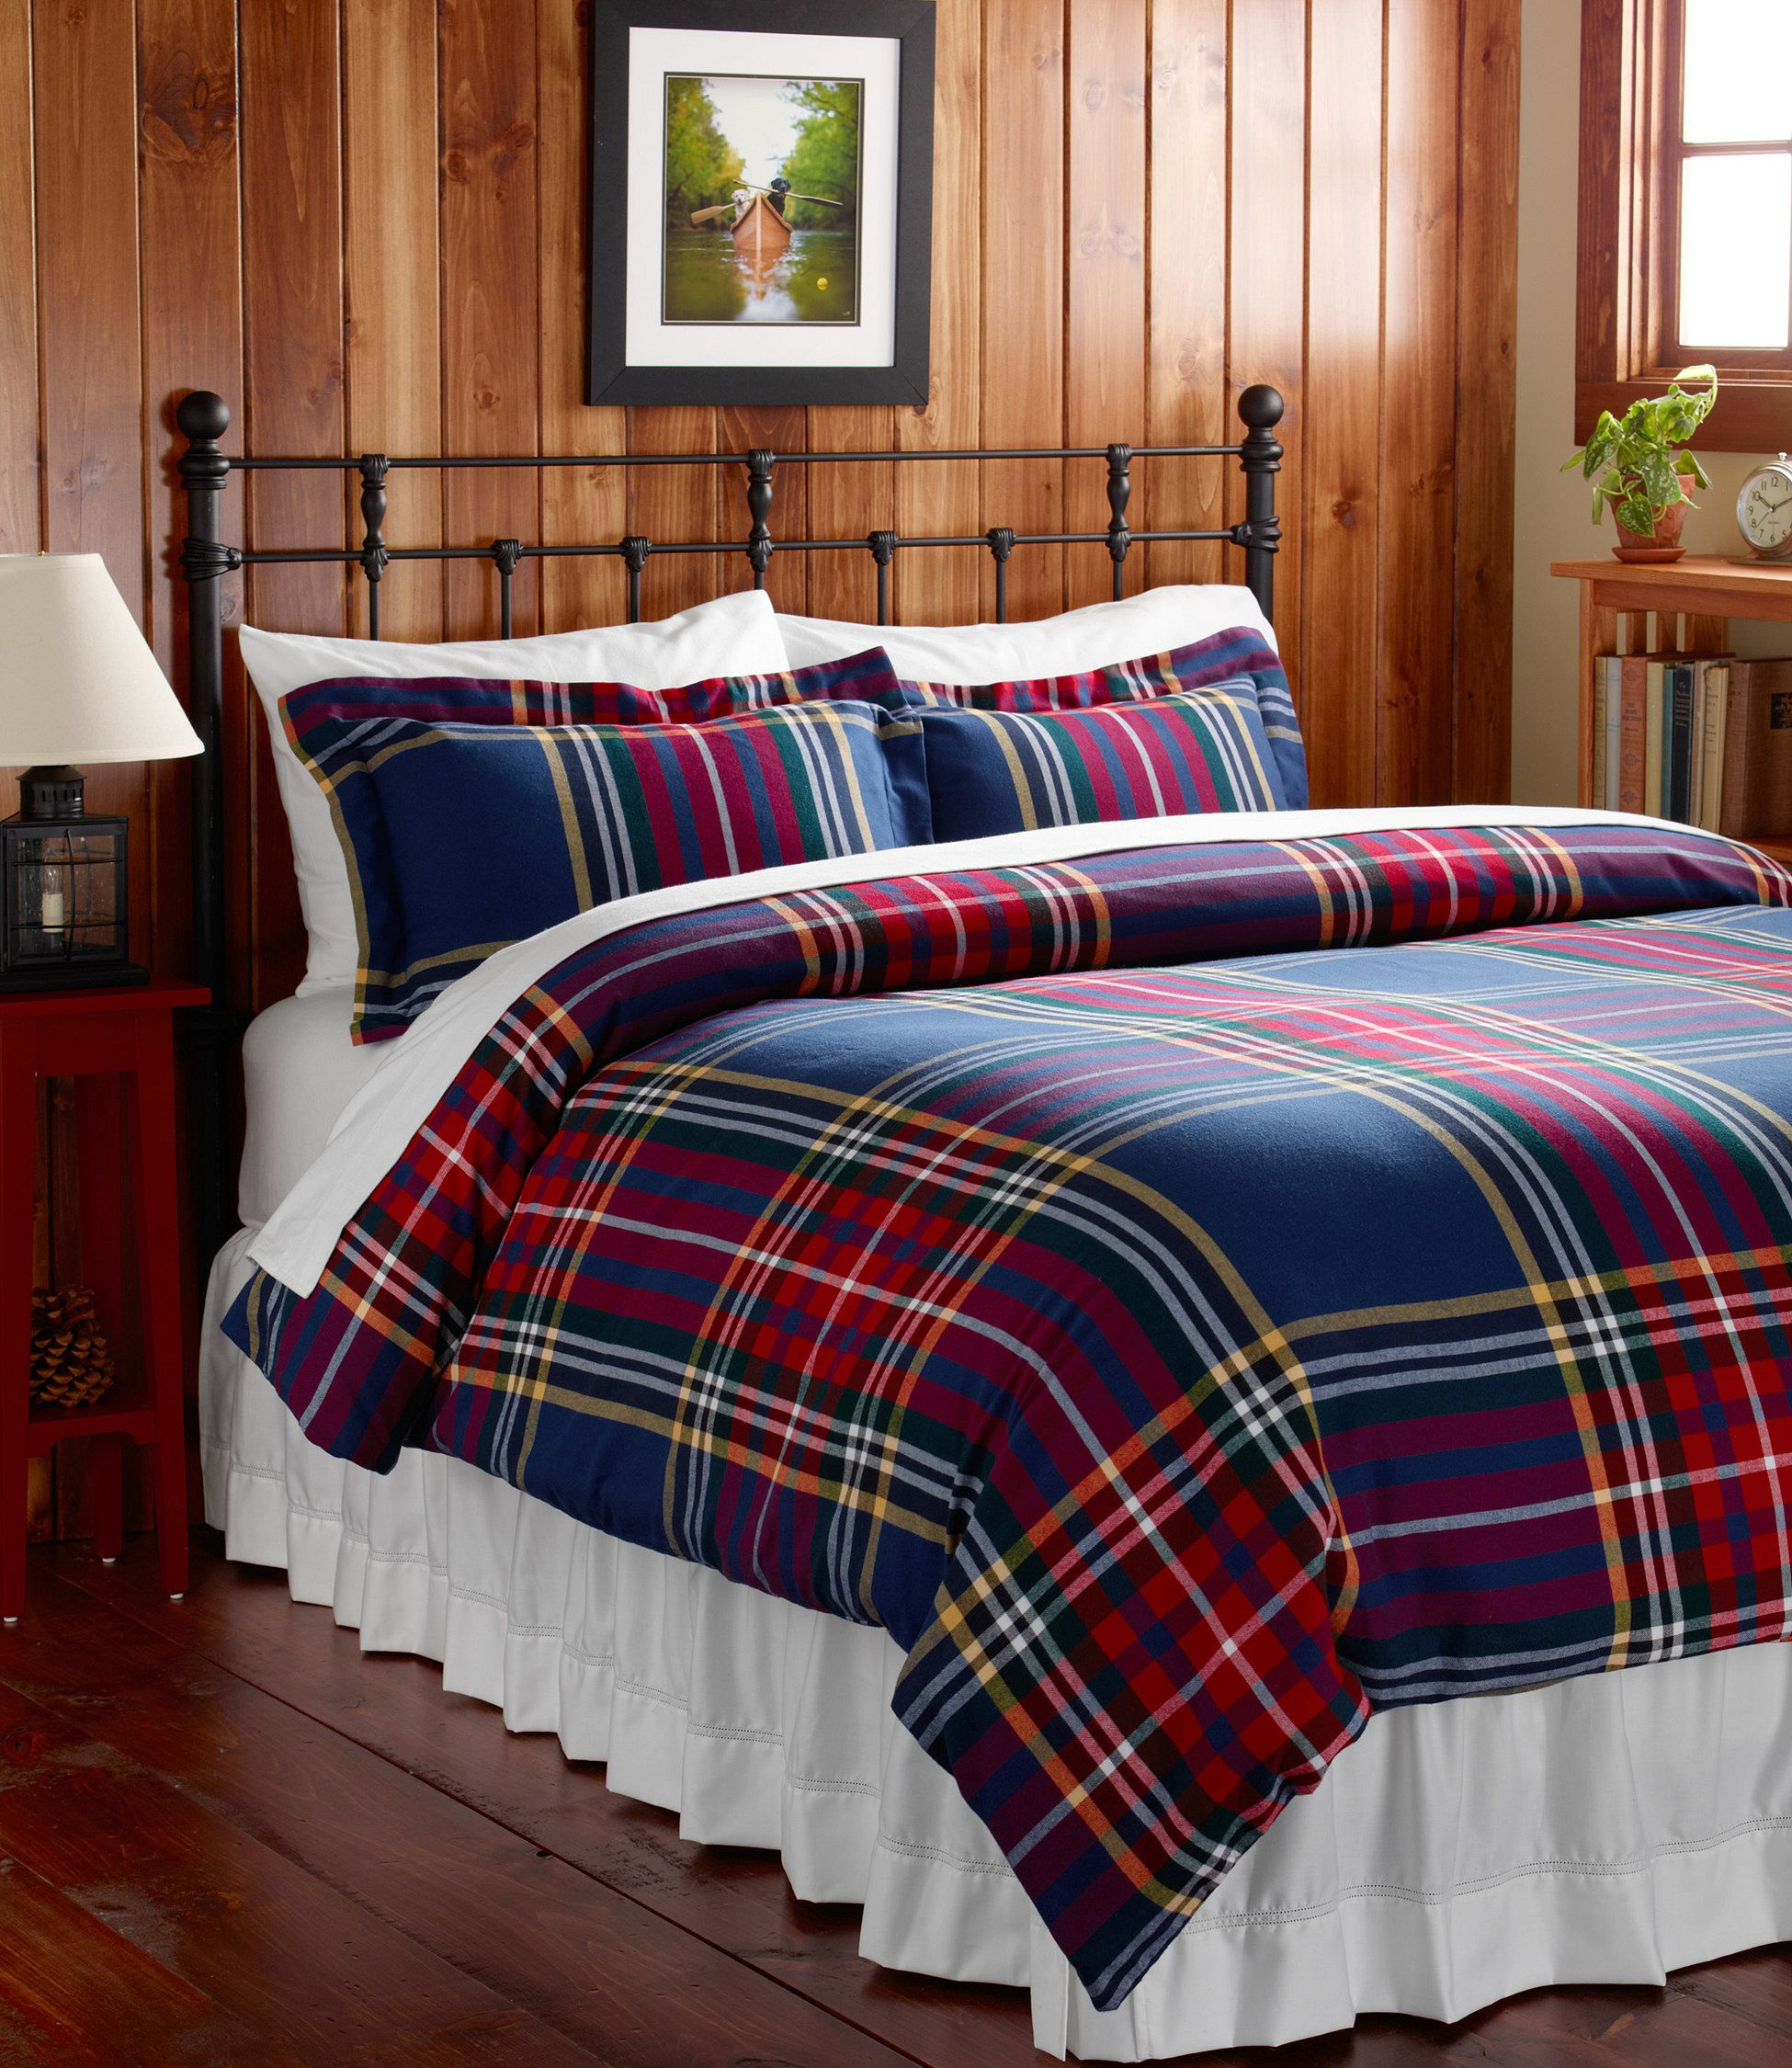 Plaid Bedding Home Plaid Bedding Home Bedroom